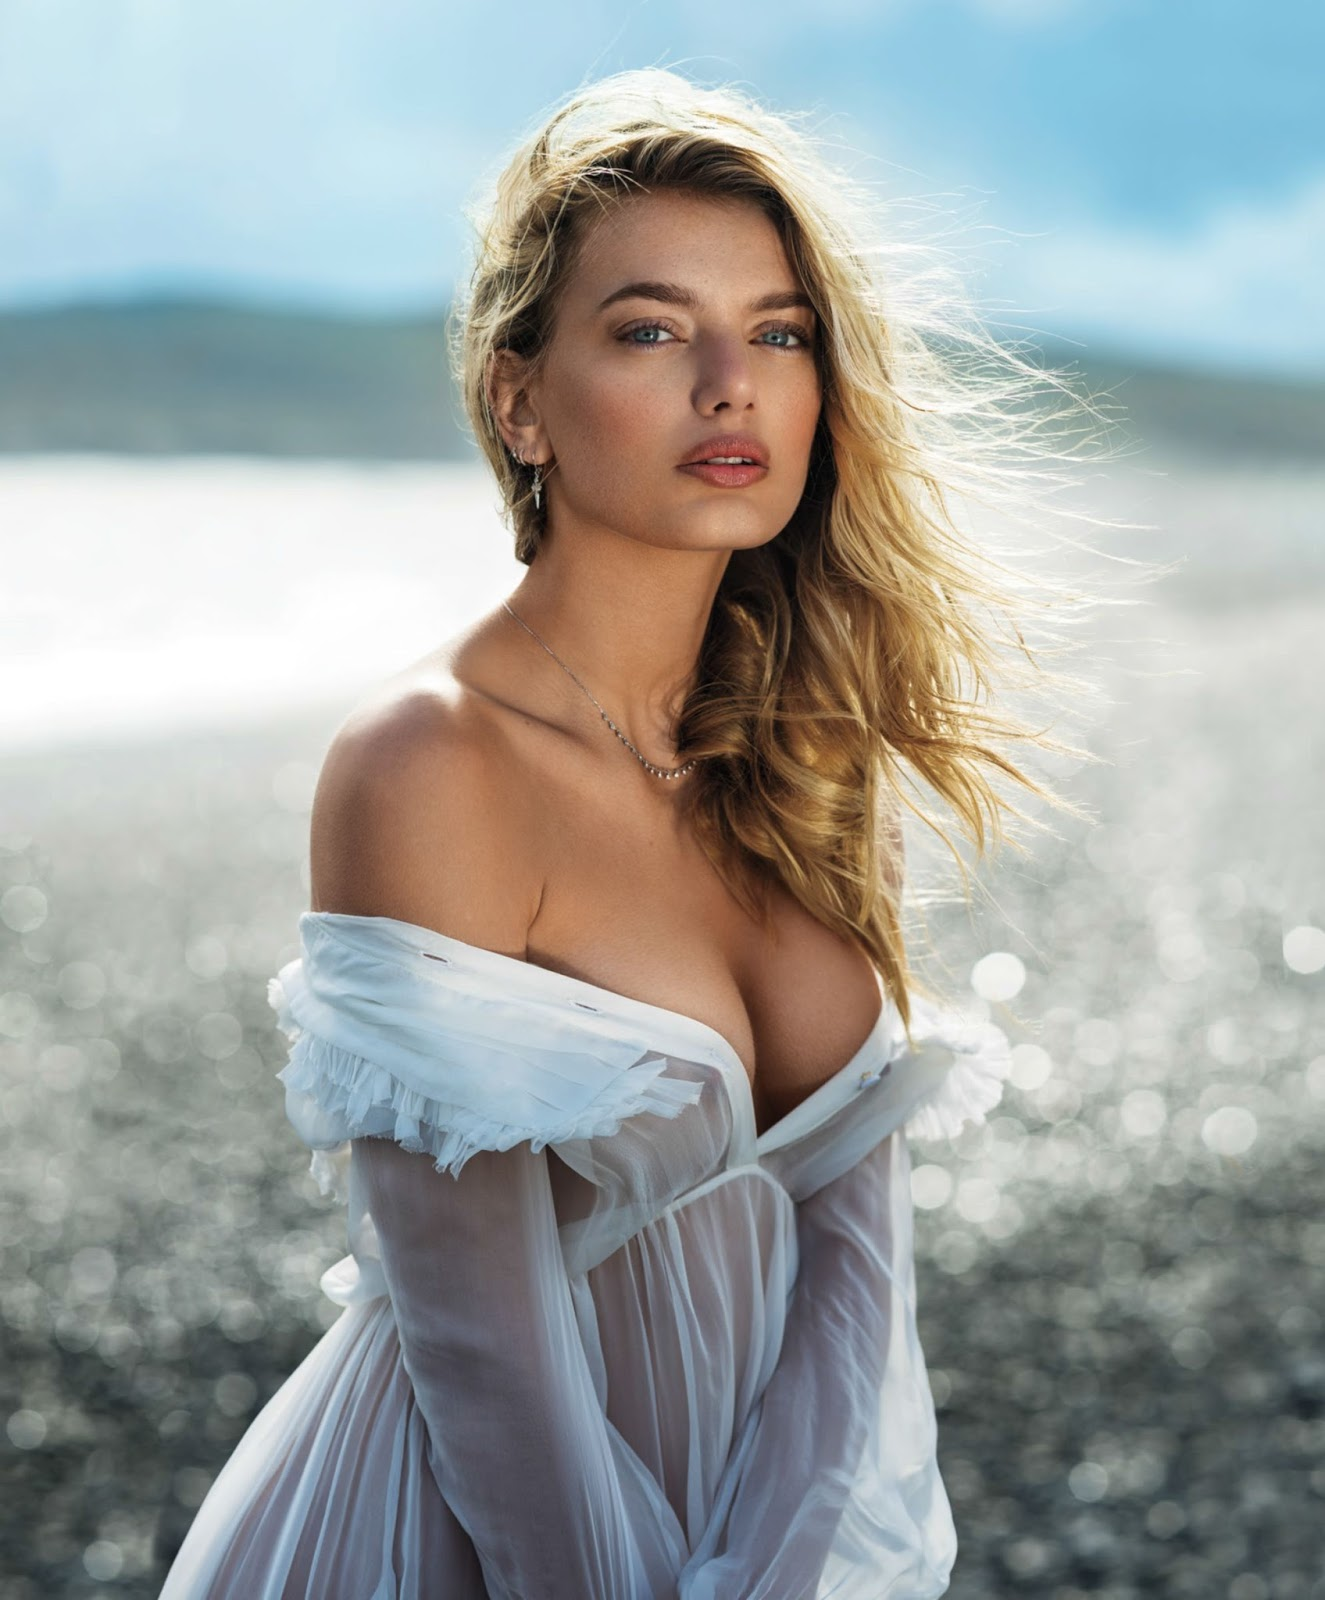 Bregje Heinen - Maxim (September 2017)